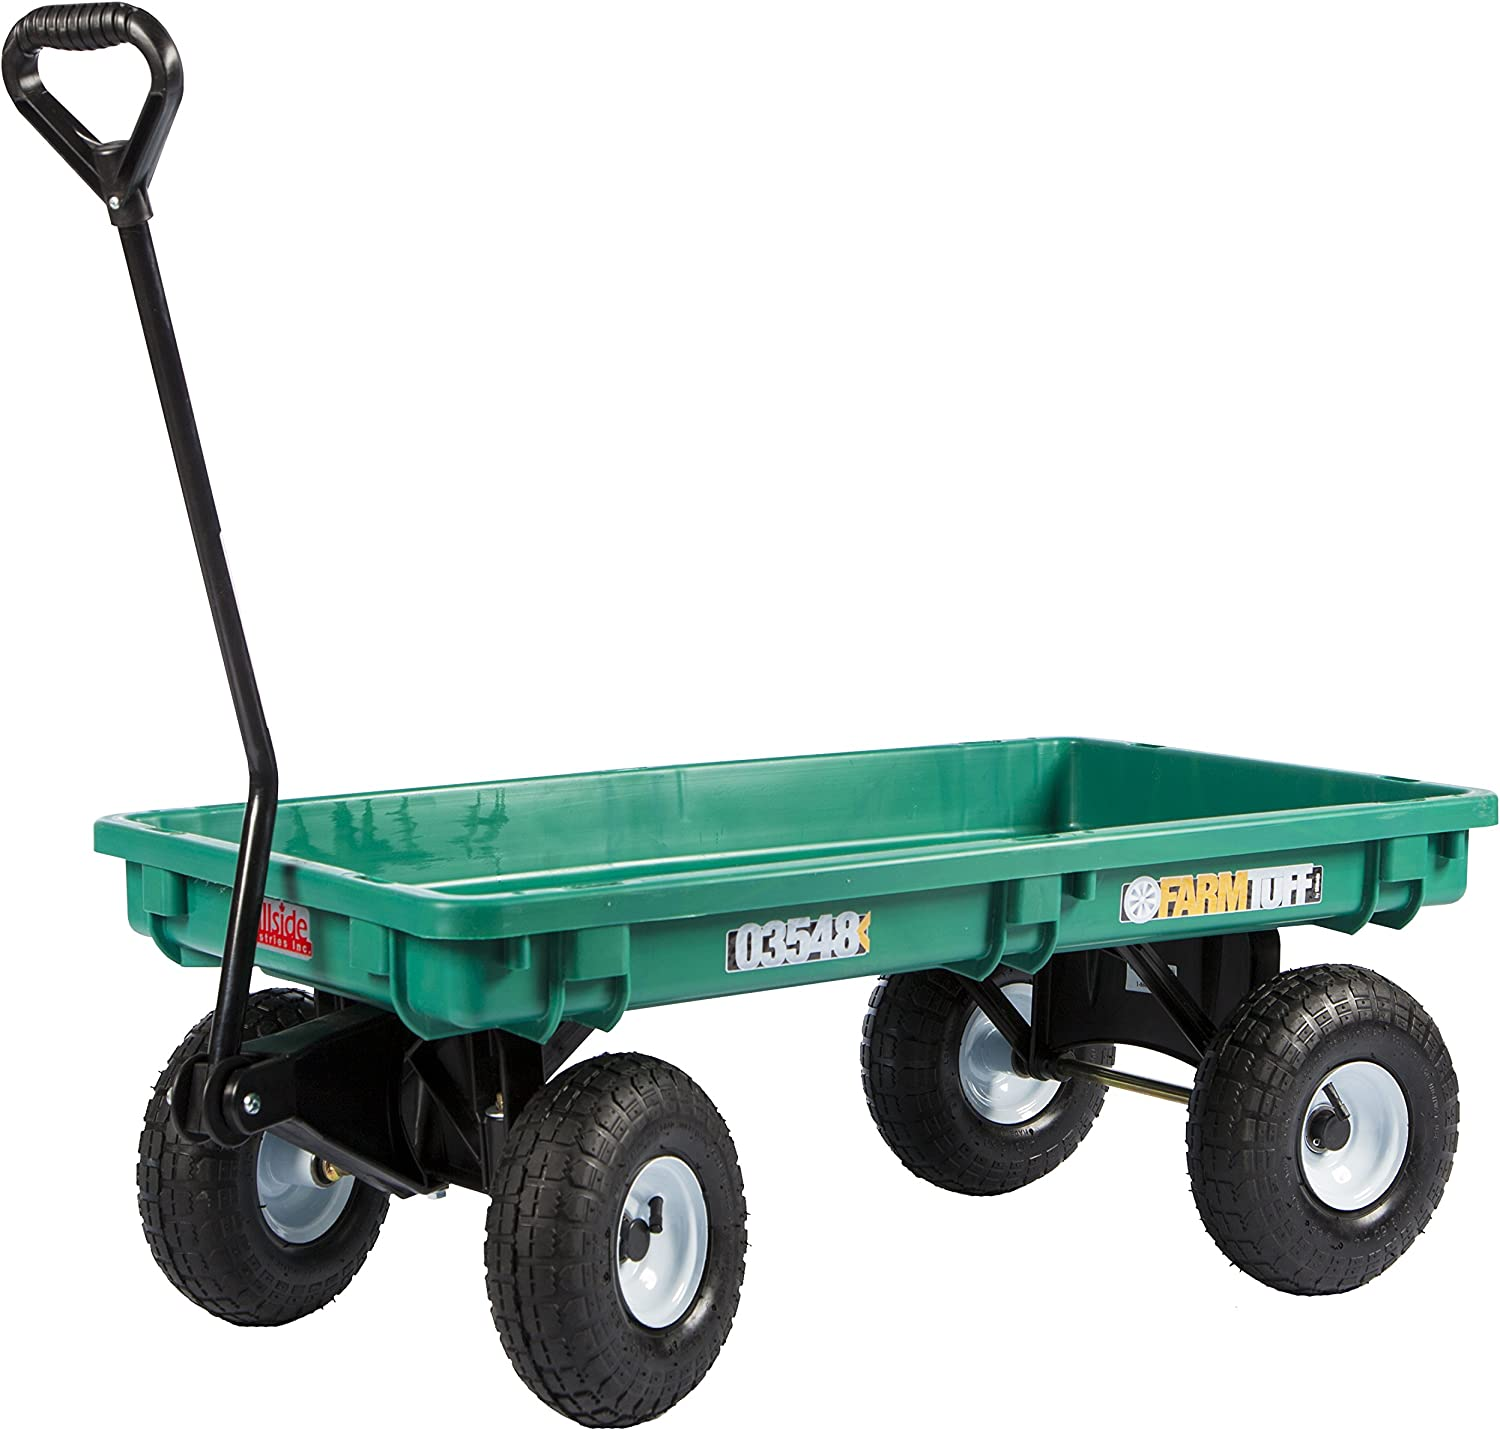 Millside 03548-FF Poly-Deck Garden Wagon with Flat Free Tires, Green